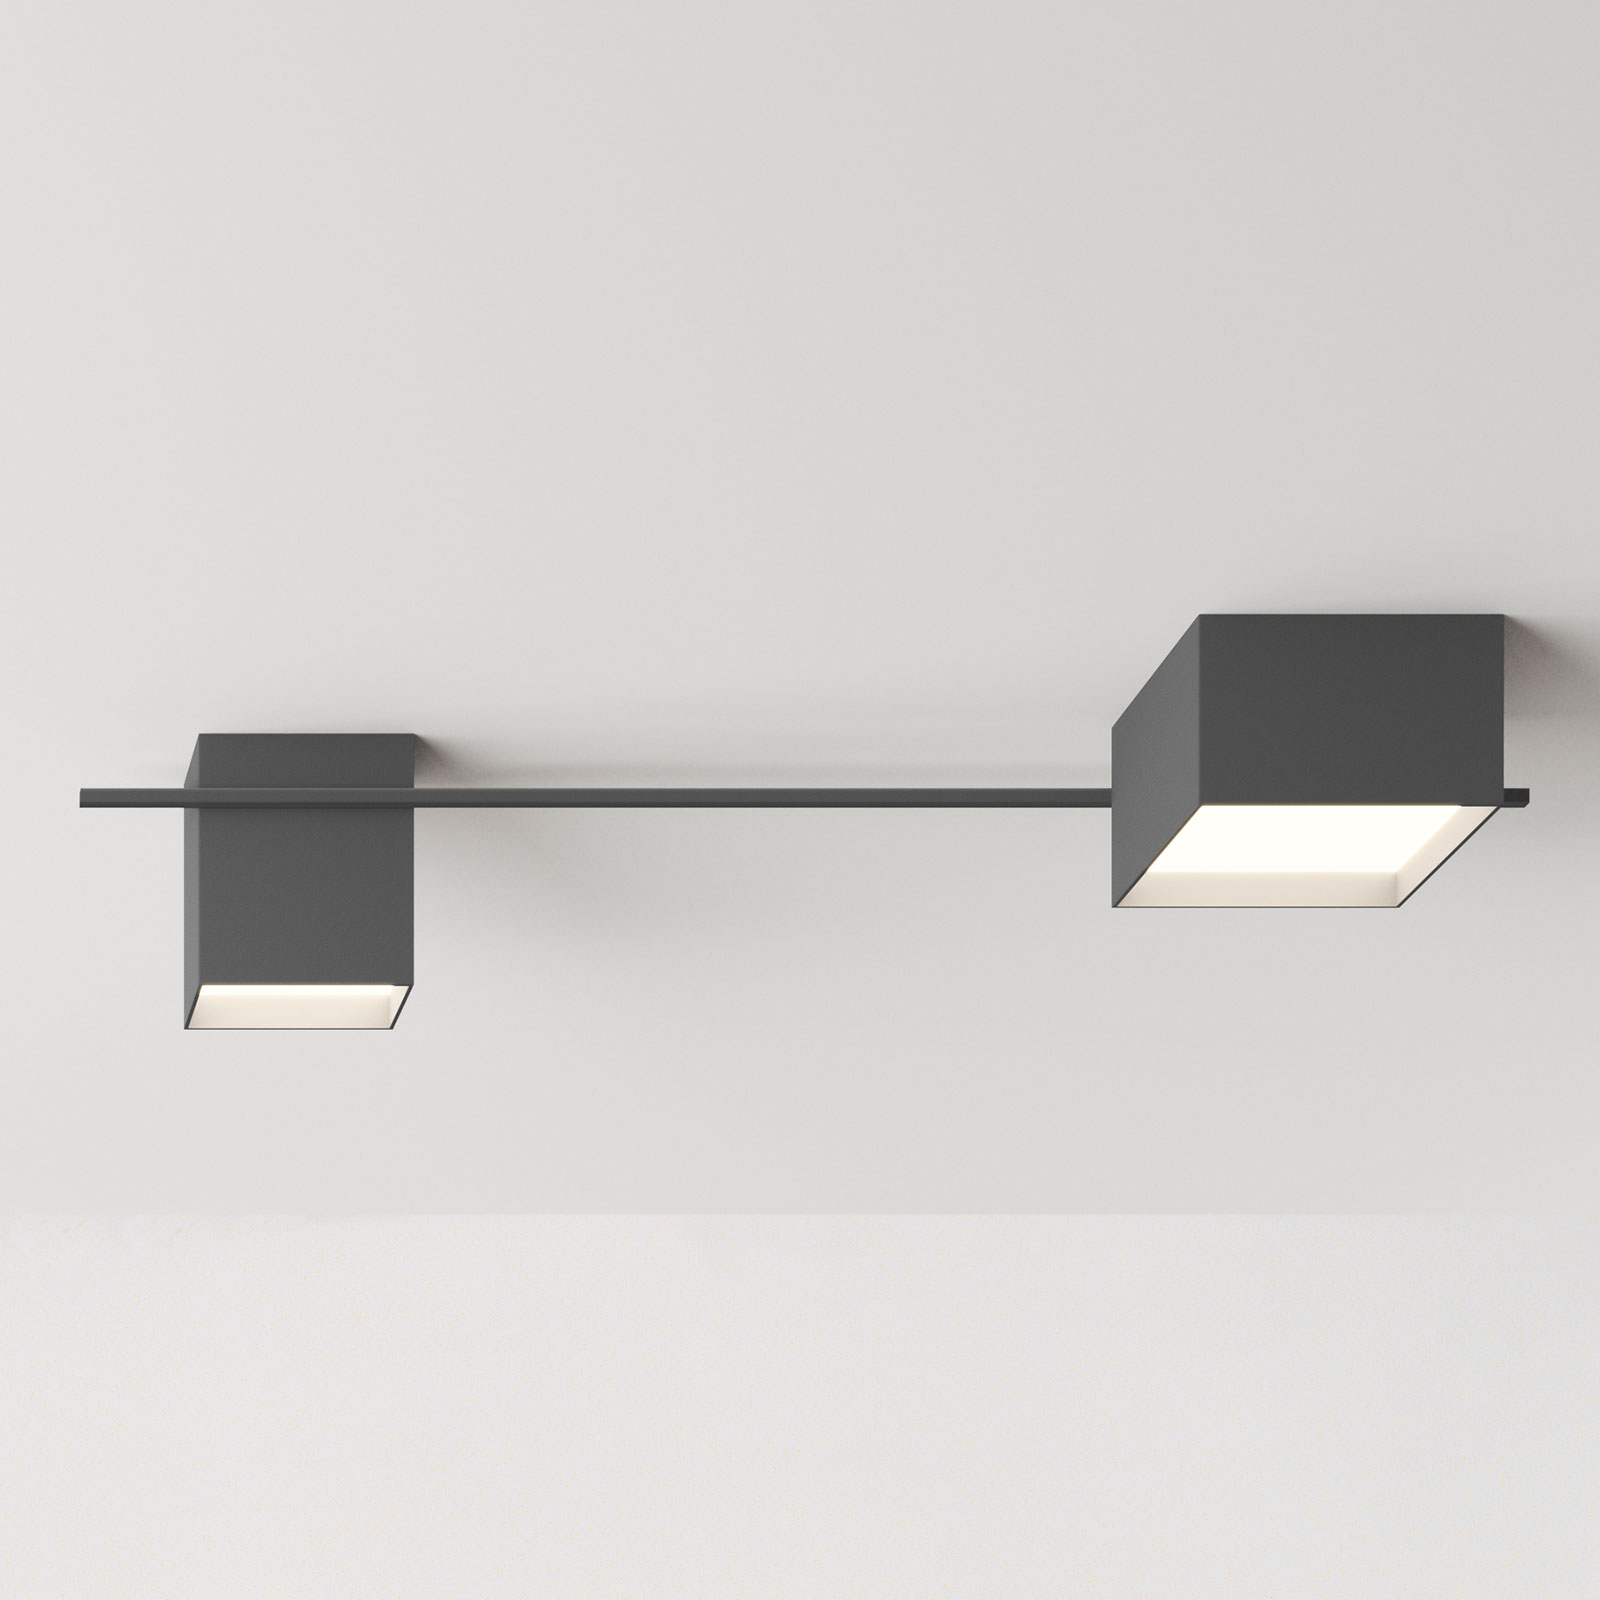 Vibia Structural 2640 plafondlamp, donkergrijs